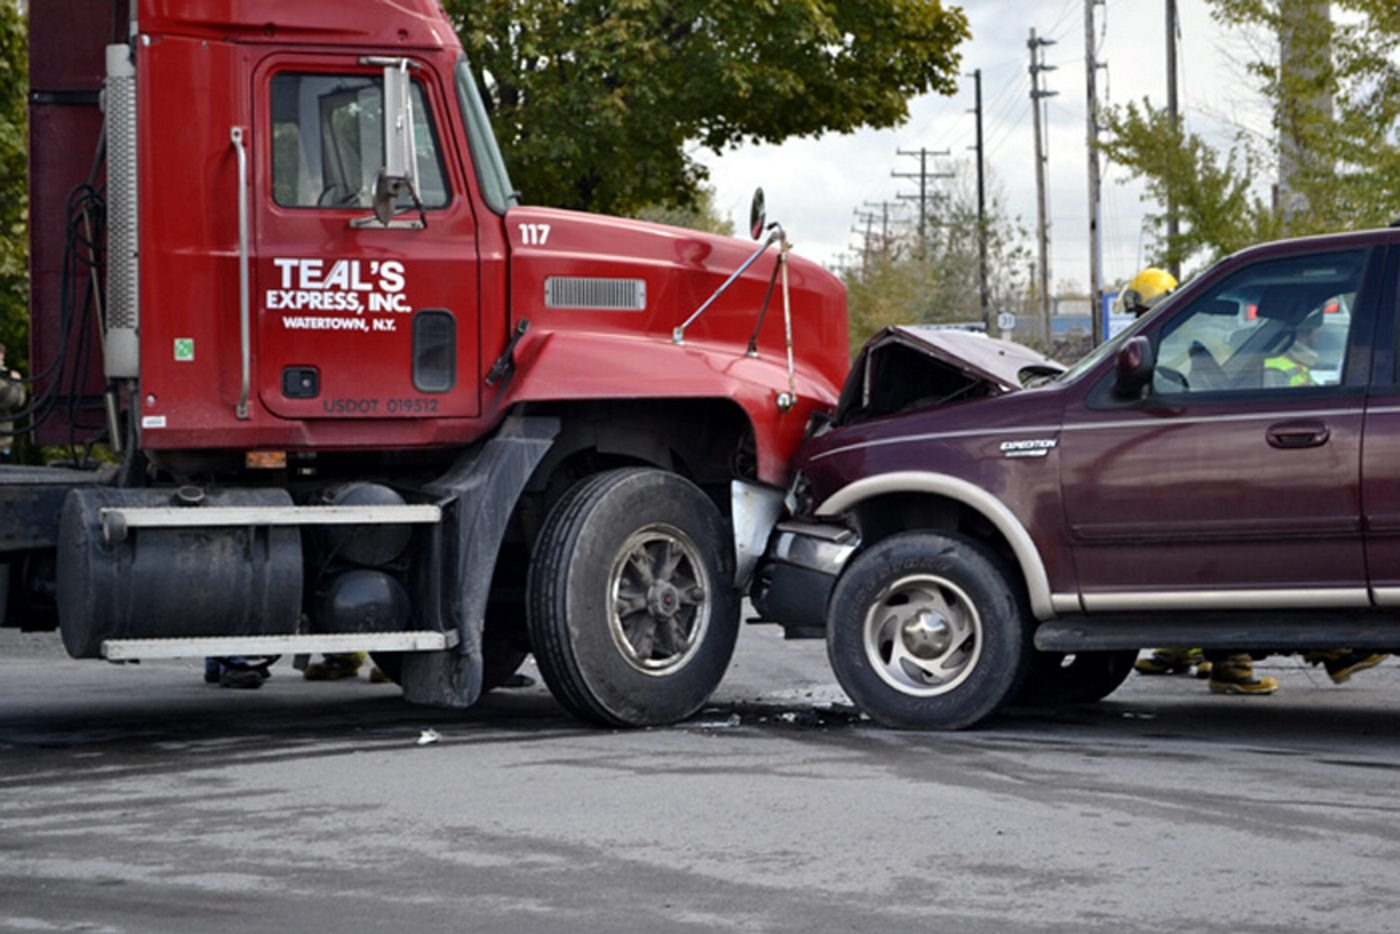 If an accident involves another vehicle, always report it to your insurance company.